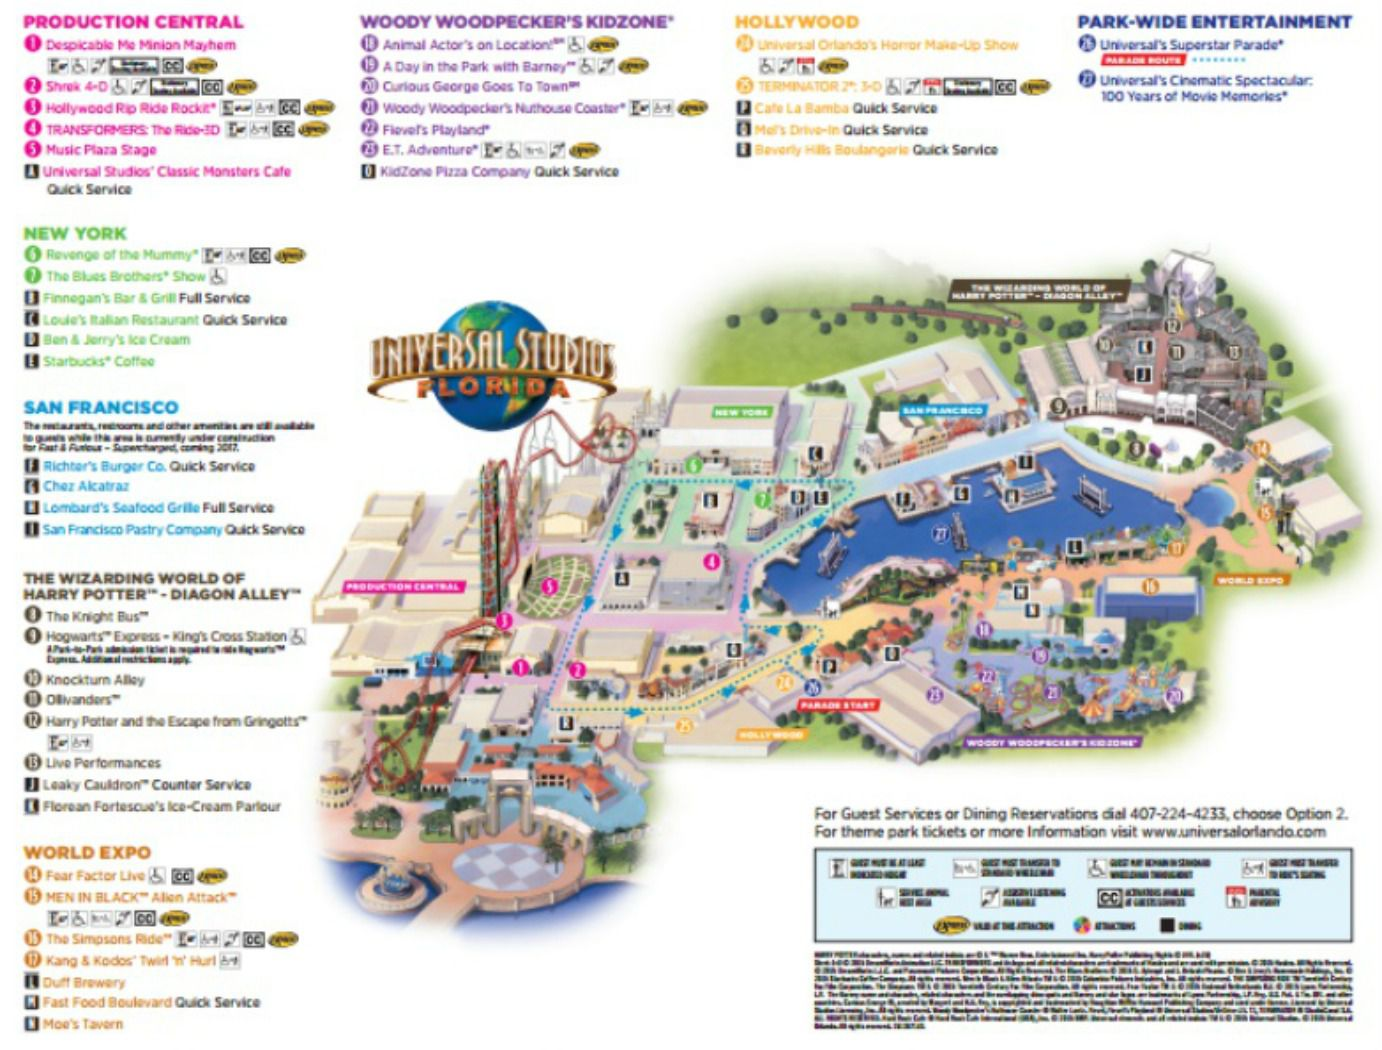 . maps of universal orlando resort's parks and hotels